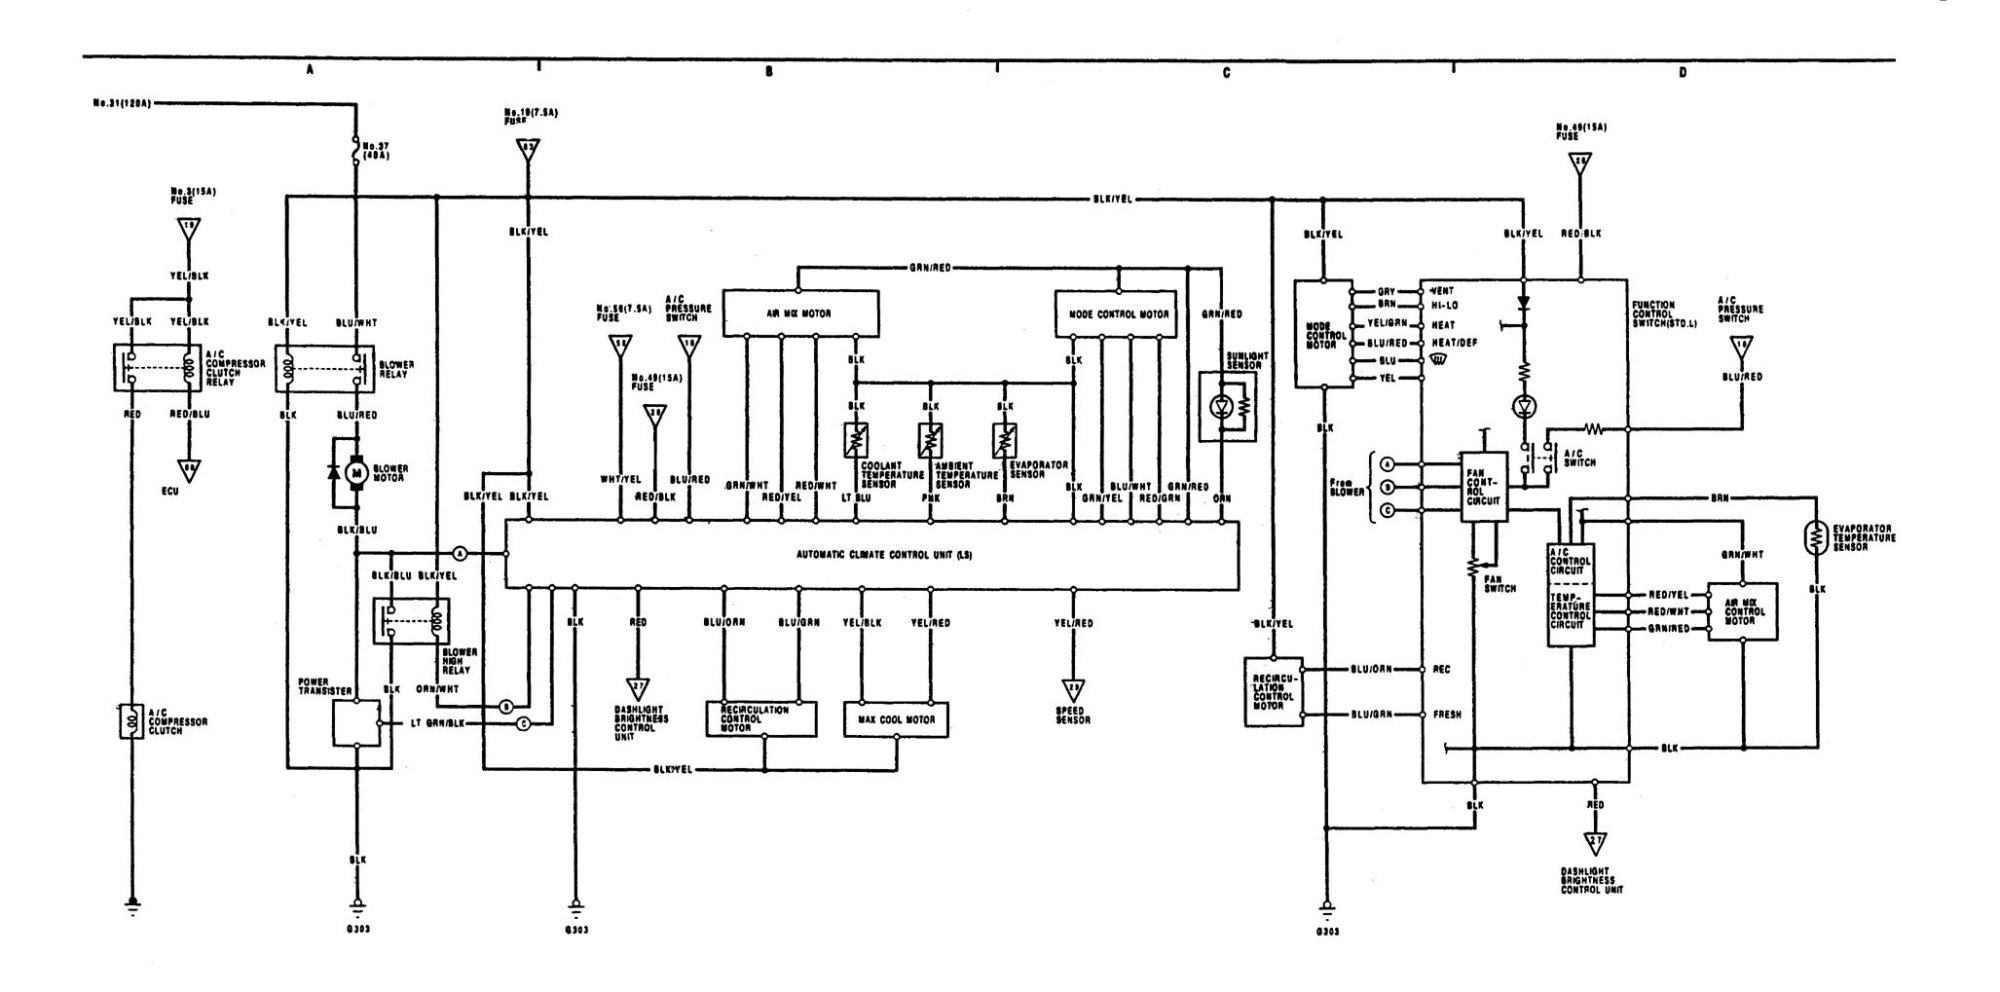 hight resolution of acura legend 1991 wiring diagram hvac controls basic electronic schematic symbol legend wiring diagram symbol legend